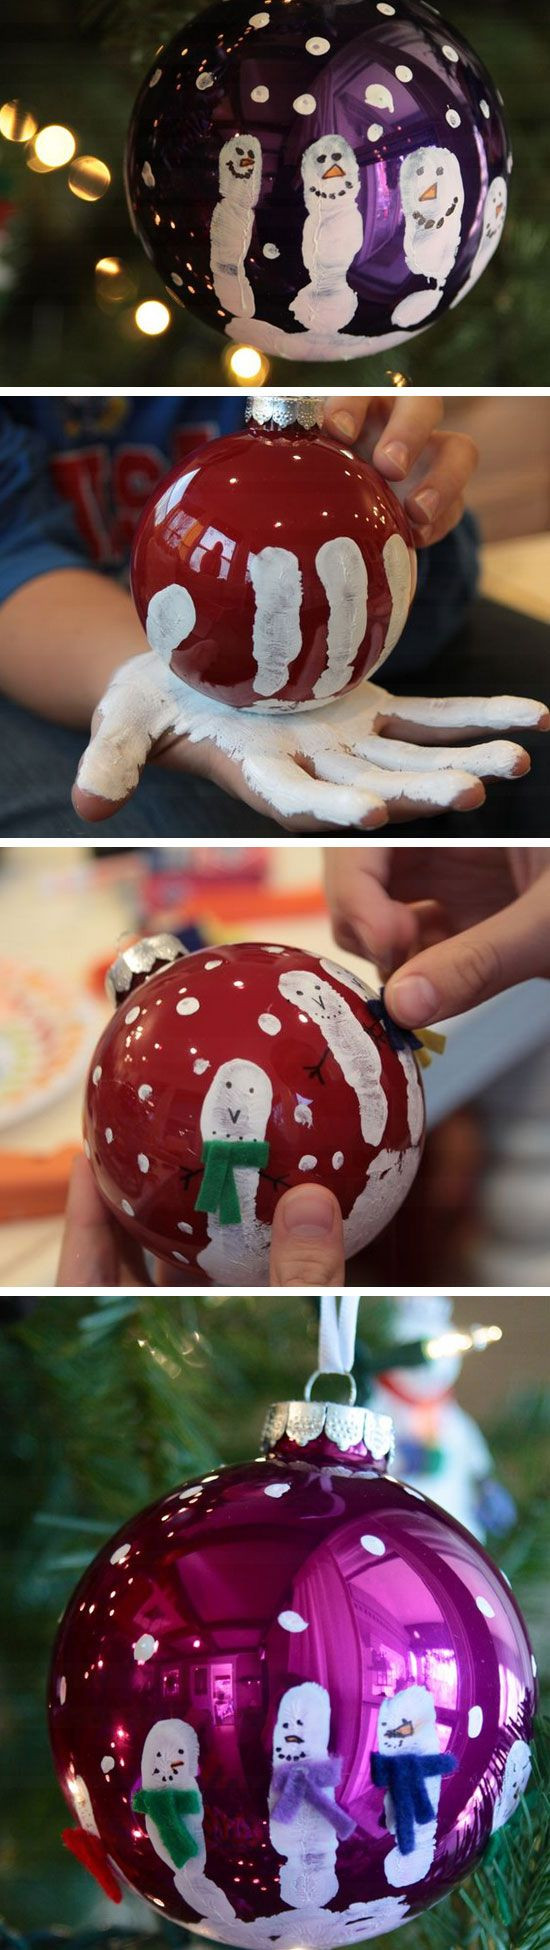 Homemade Crafts For Toddlers  Easy and Cute DIY Christmas Crafts for Kids to Make Hative